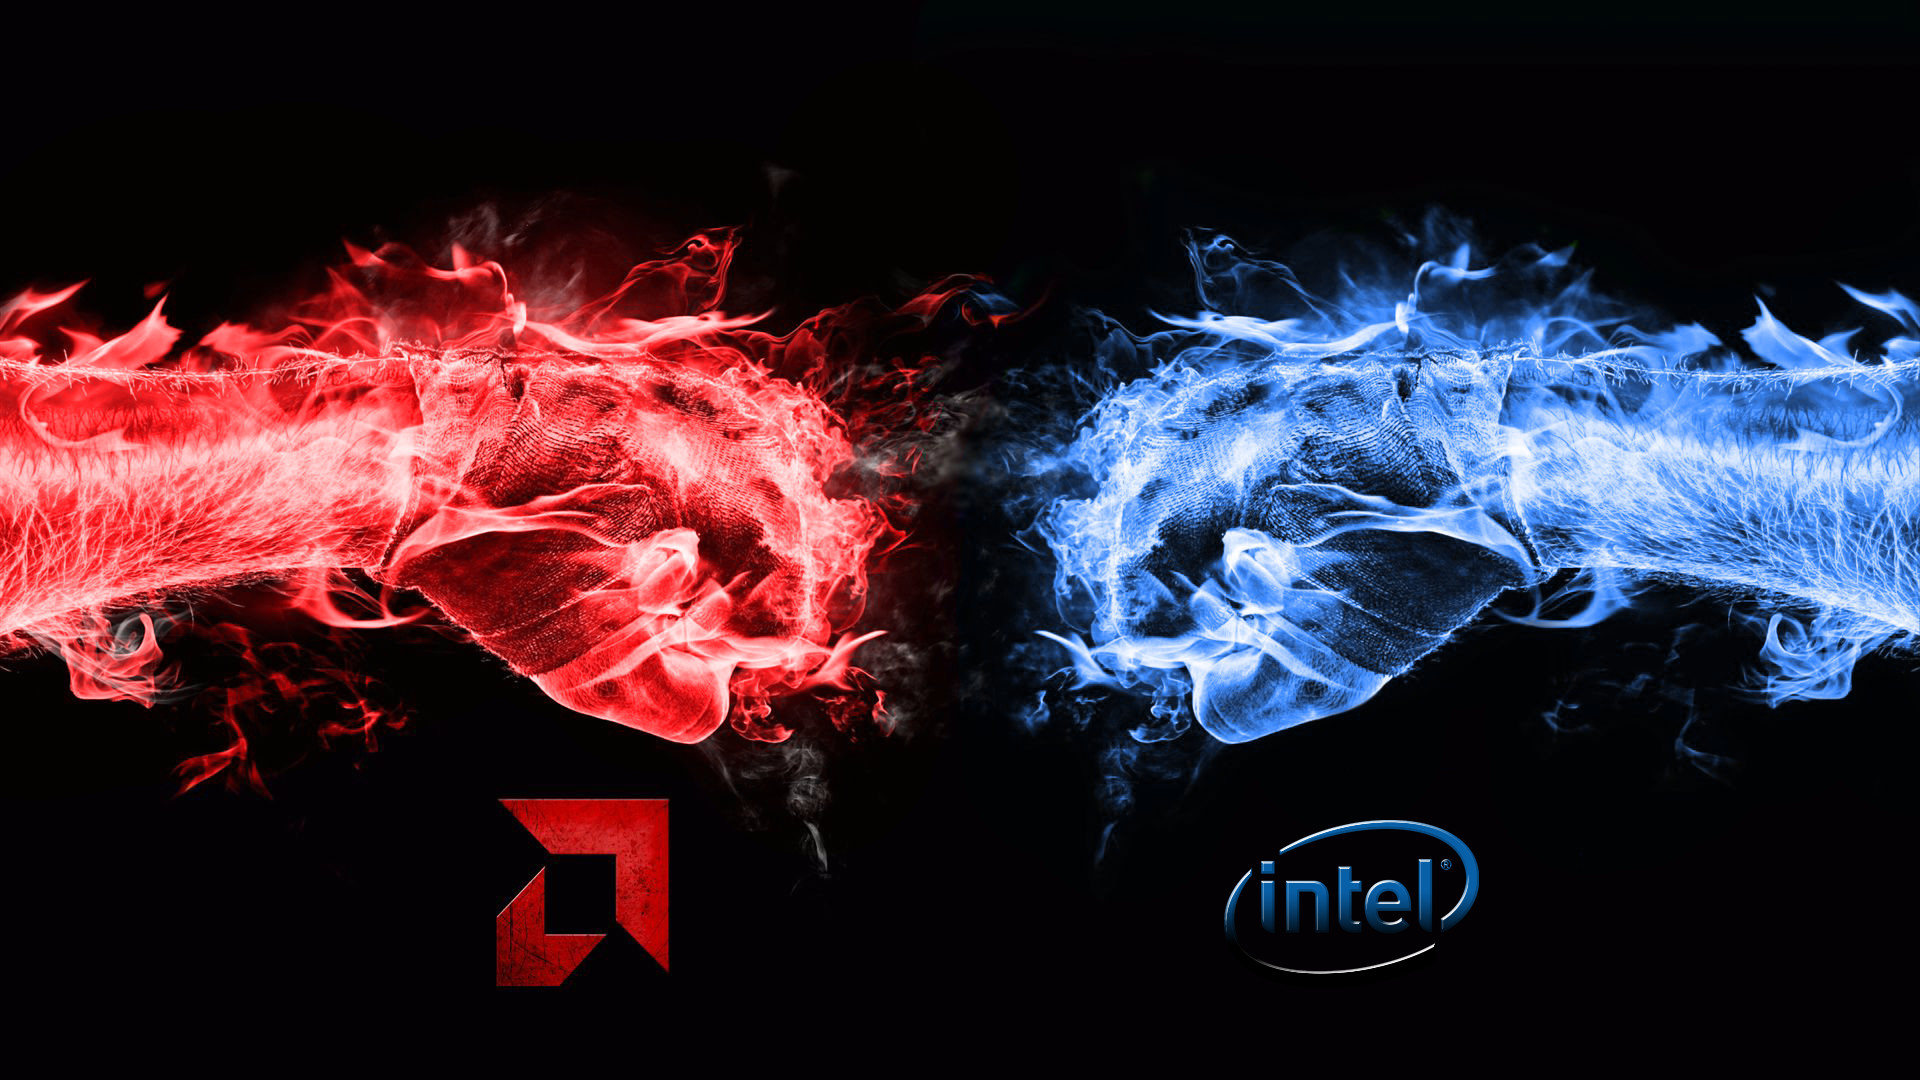 Amd S Upcoming Ryzen Launch To Prompt Reshuffle Of Intel S Cpu Line